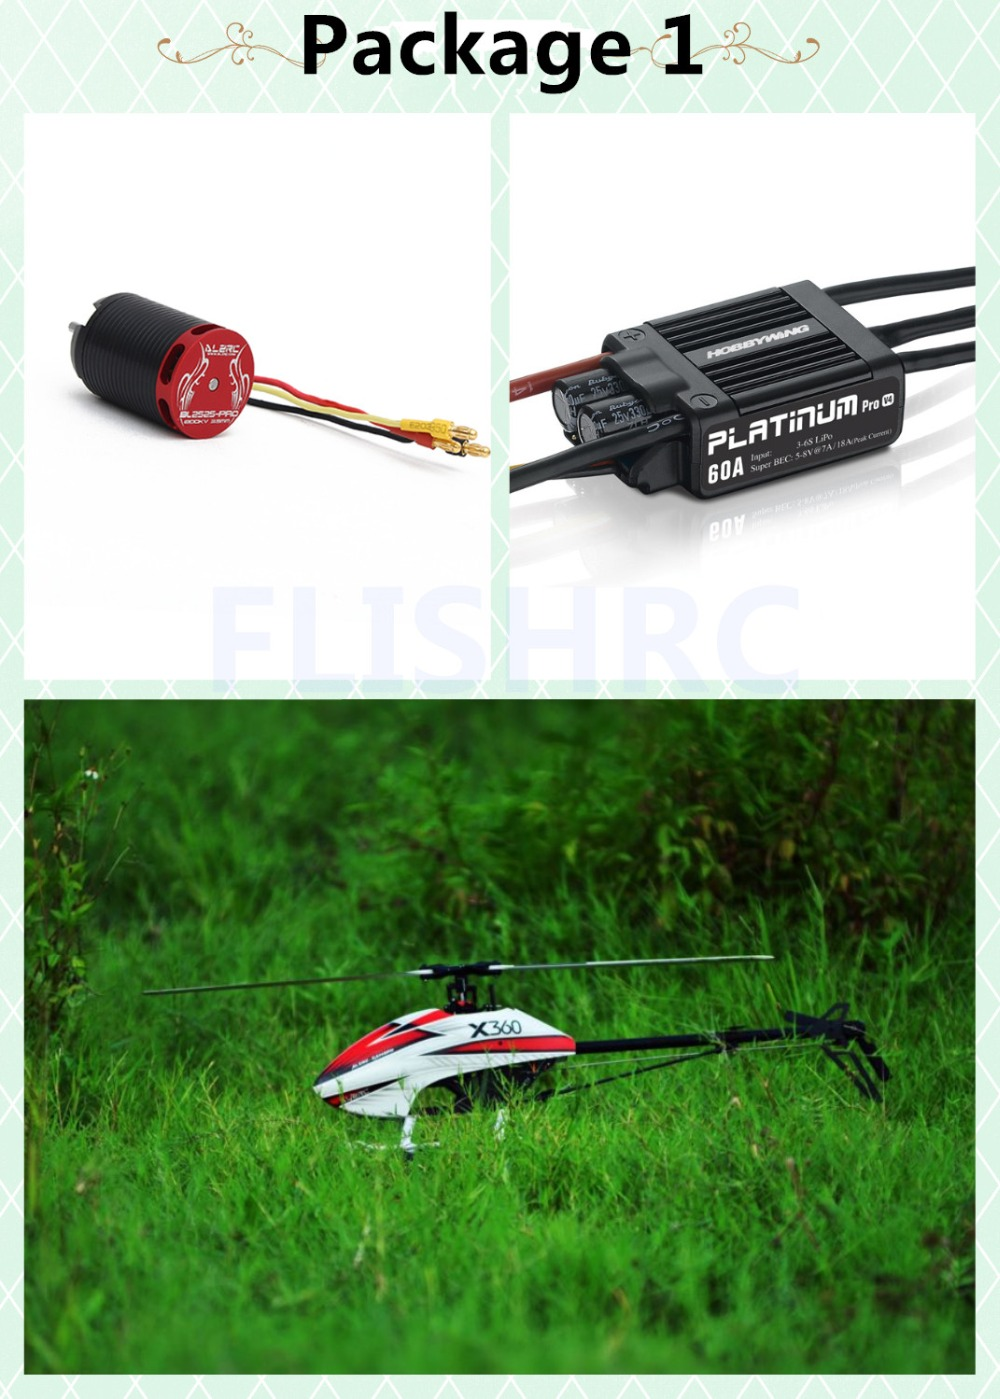 In Stock 2018 The Newest ALZRC X360 FAST FBL KIT Helicopter (with Electronic Equipment) for GAUI X3